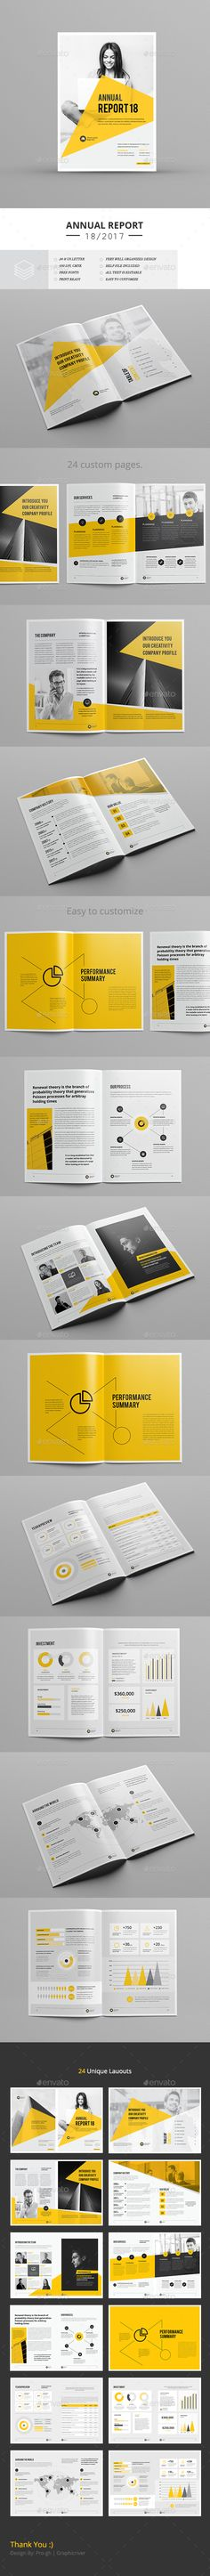 Annual Report Template InDesign INDD Download here   - annual report template design